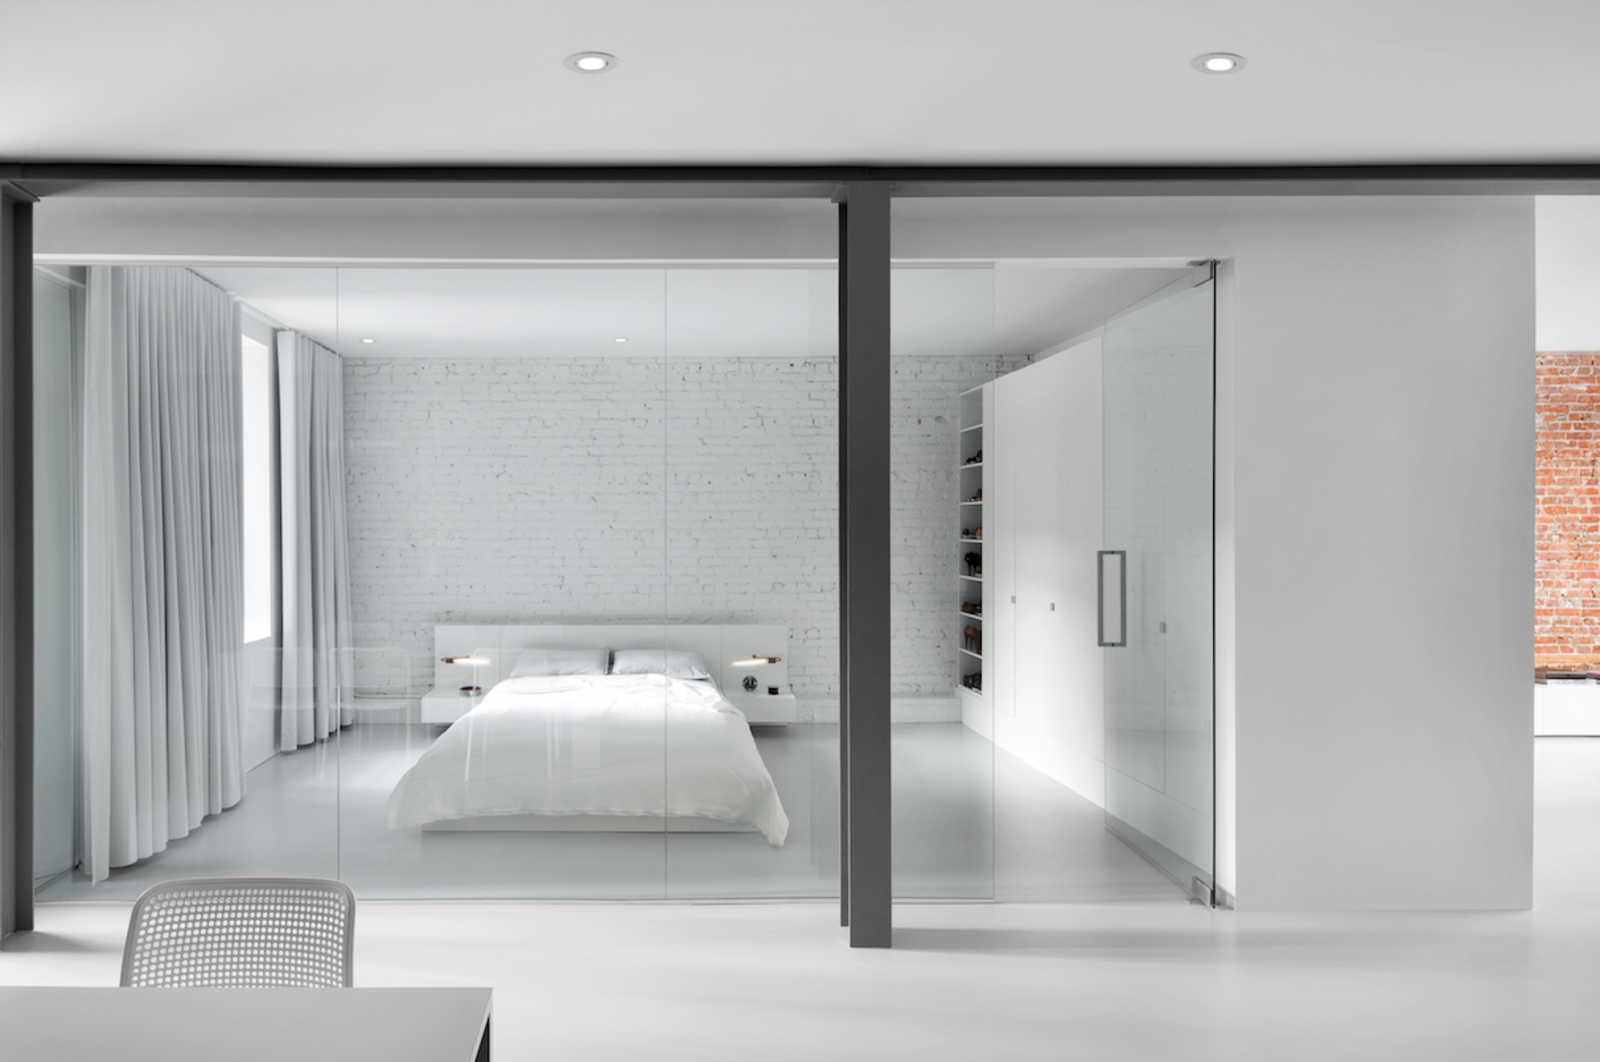 Bedroom, Bed, Recessed Lighting, Shelves, Night Stands, Wardrobe, and Table Lighting The bedroom is enclosed with a glass wall. A blackout curtain can be drawn closed for privacy. An IKEA cabinet and white lacquered shelves help to provide plenty of closet space.    Bedroom